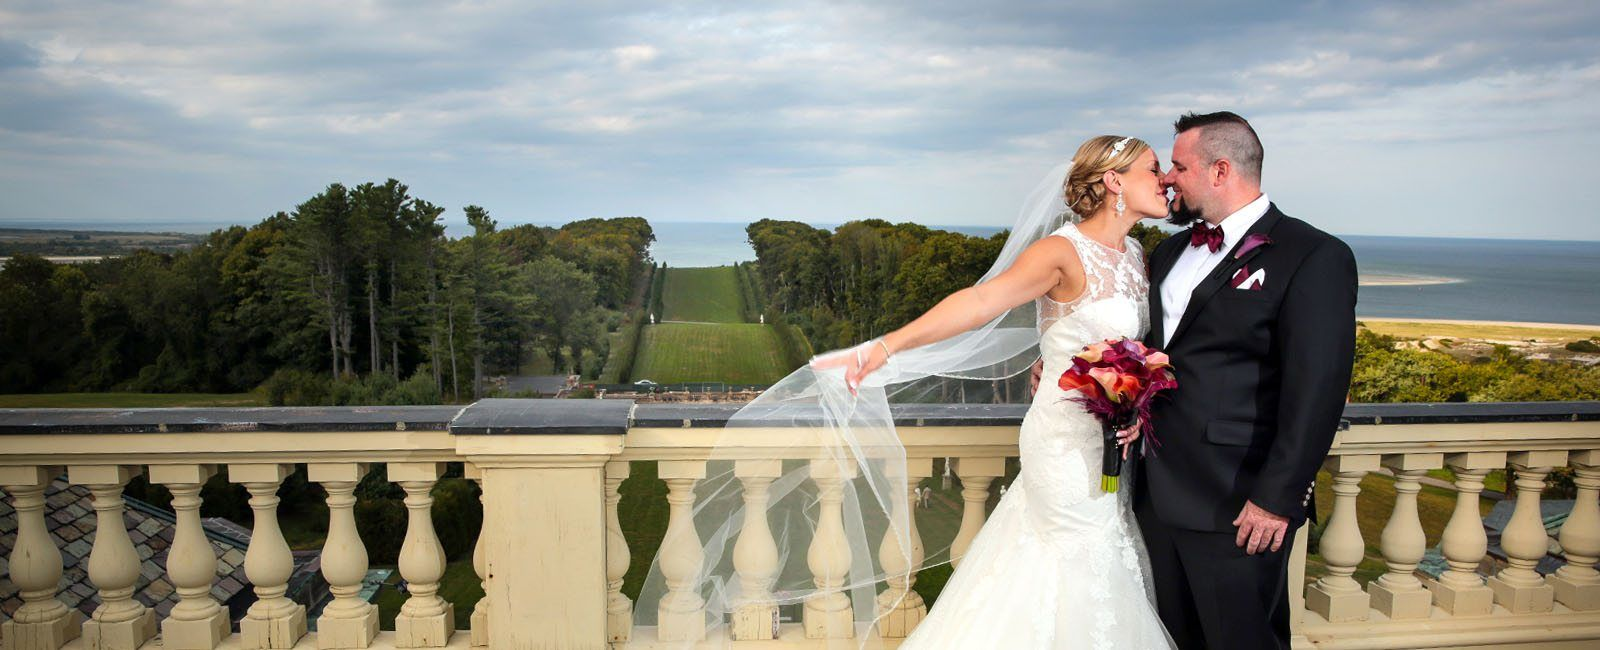 Bride and groom at the Crane Estate